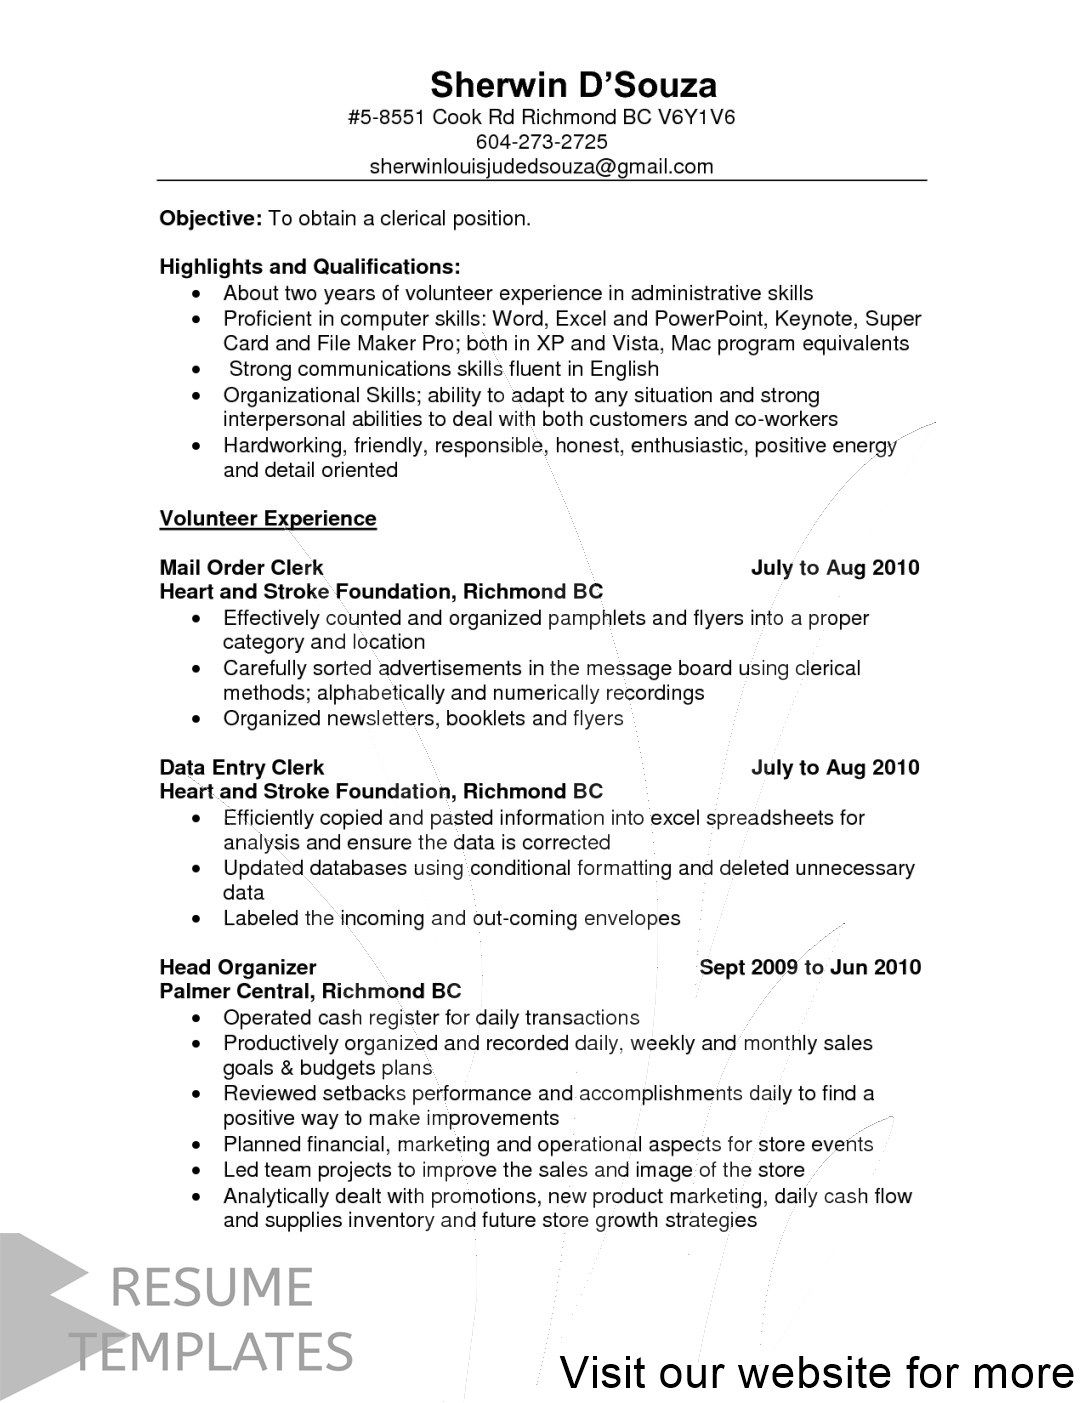 cover letter example marketing in 2020 Good resume